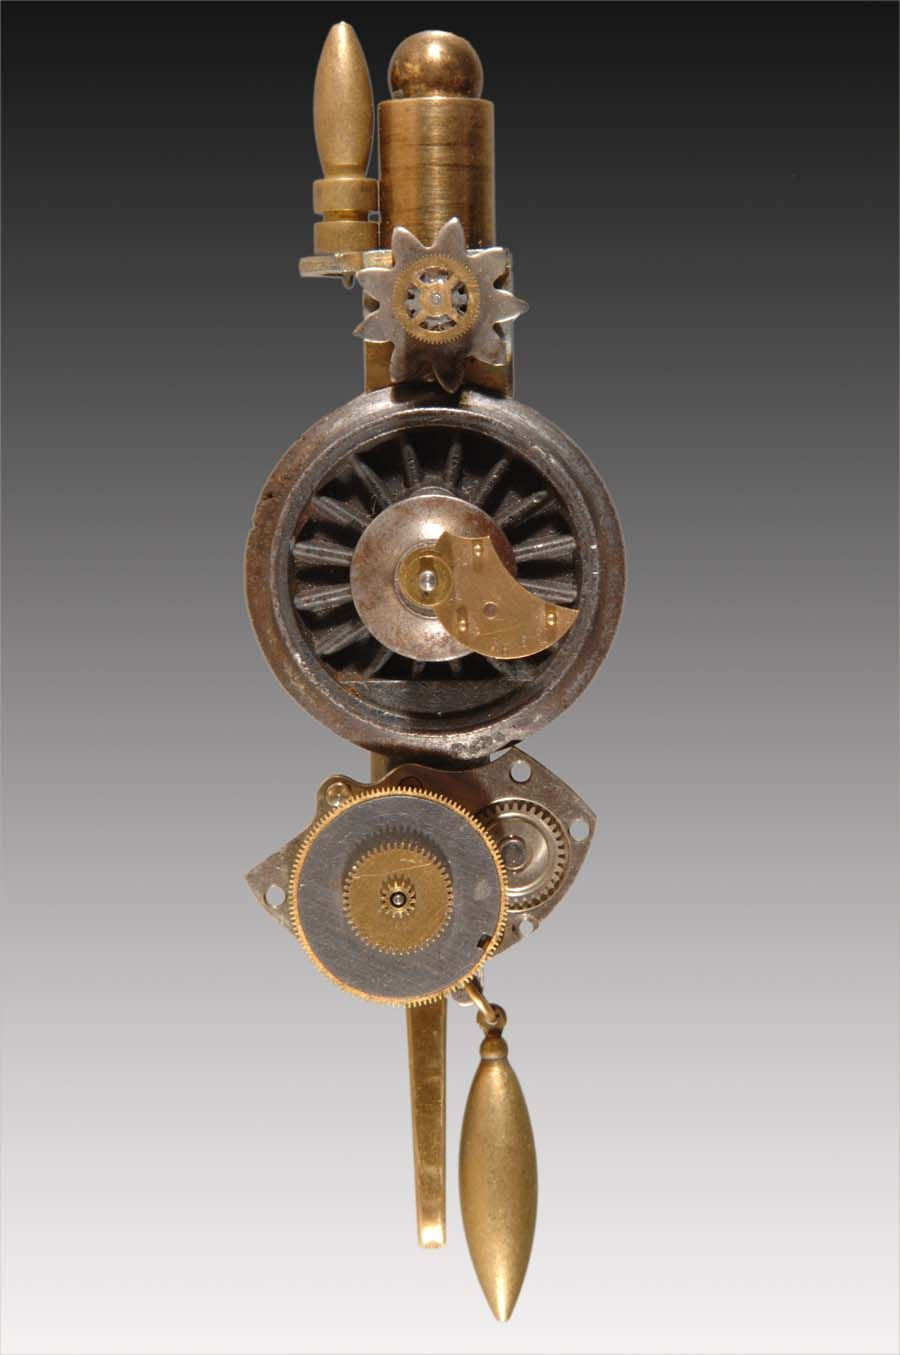 Steampunk Crafts | Ann Pedro Steampunk Jewelry | American Craft Council